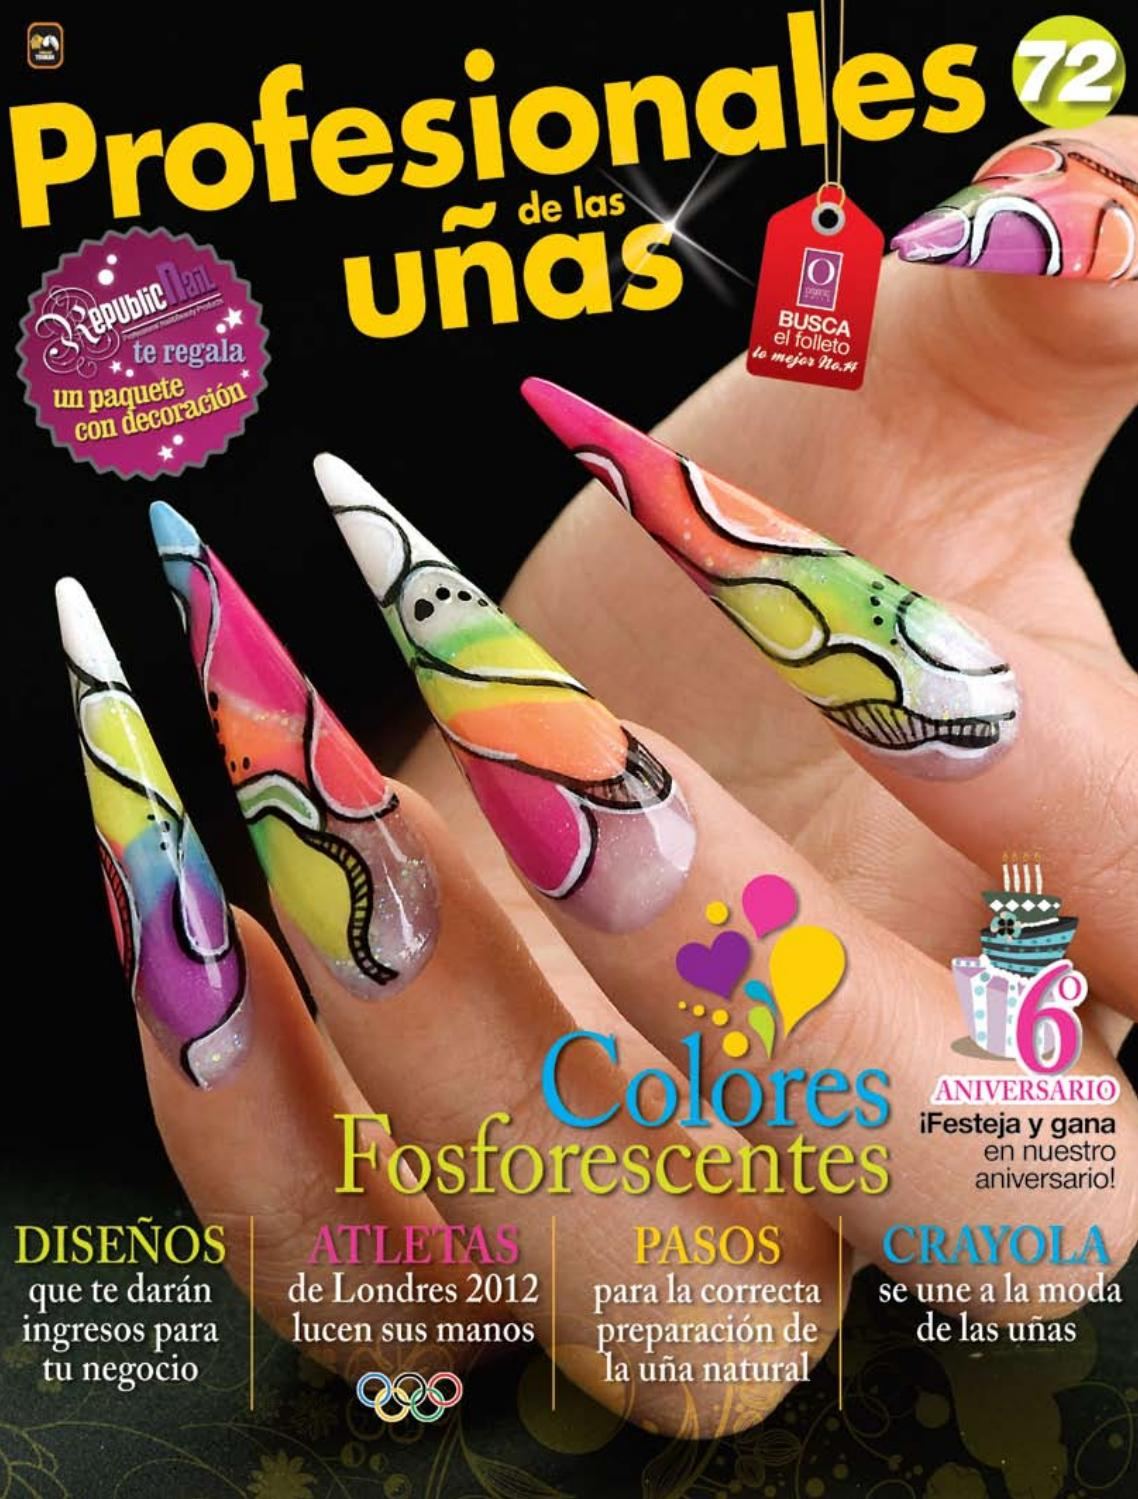 Profesionales de las uñas No. 72 by Editorial Toukan - issuu